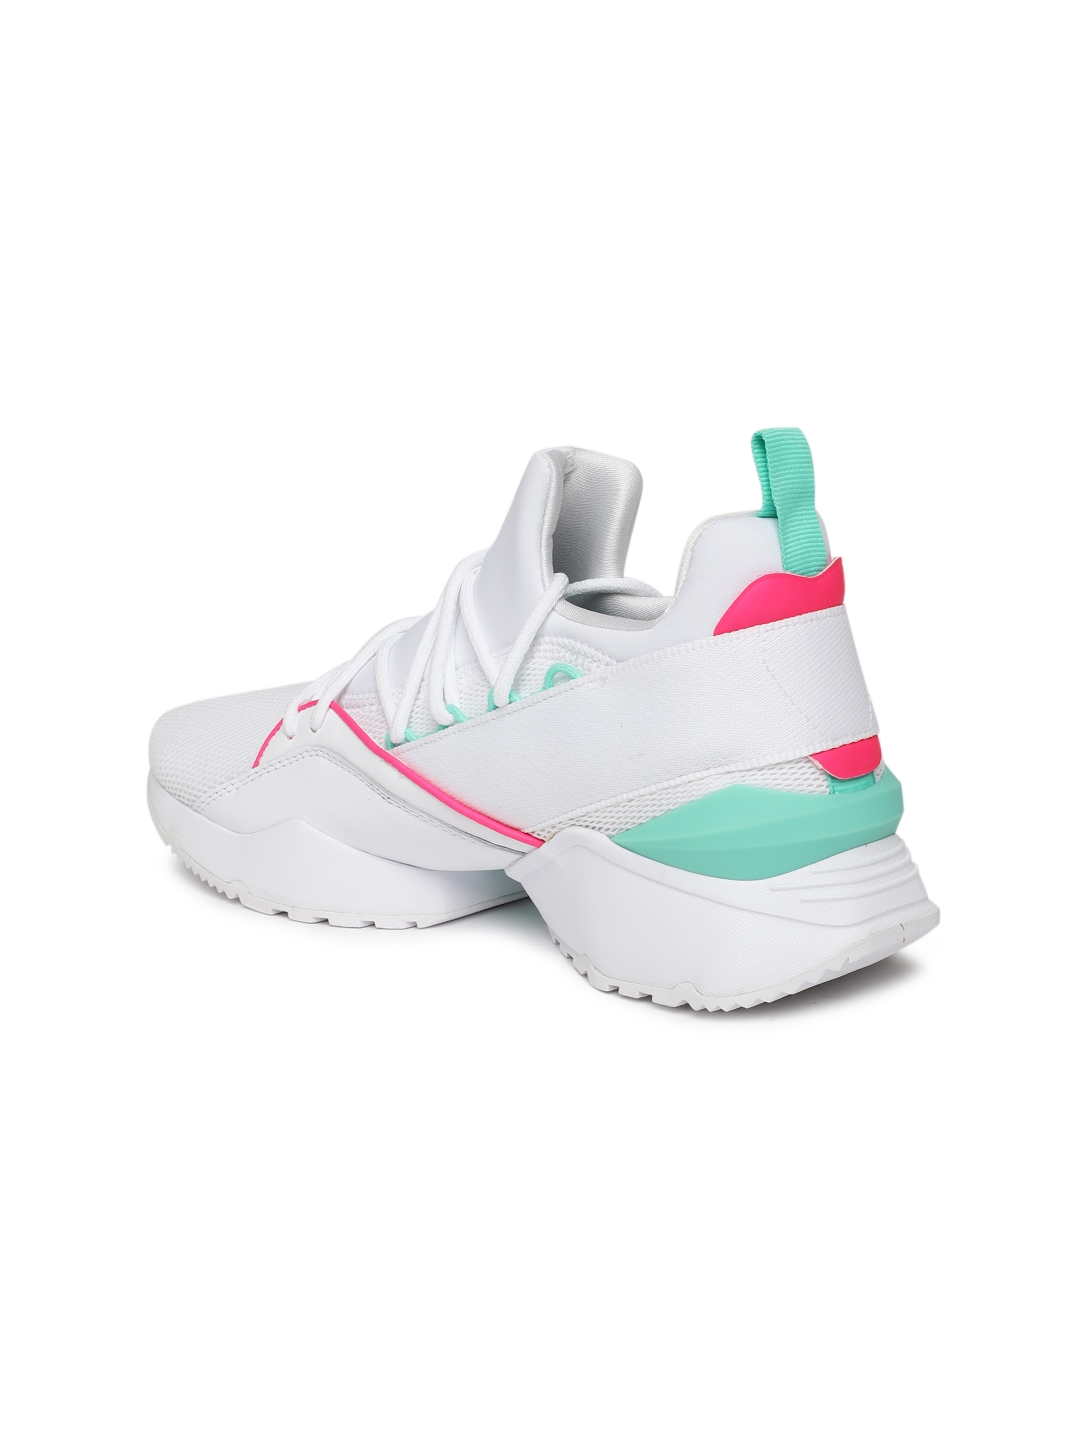 Buy Puma Women White Muse Maia Street 1 Sneakers - Casual Shoes for ... 3885f24c5